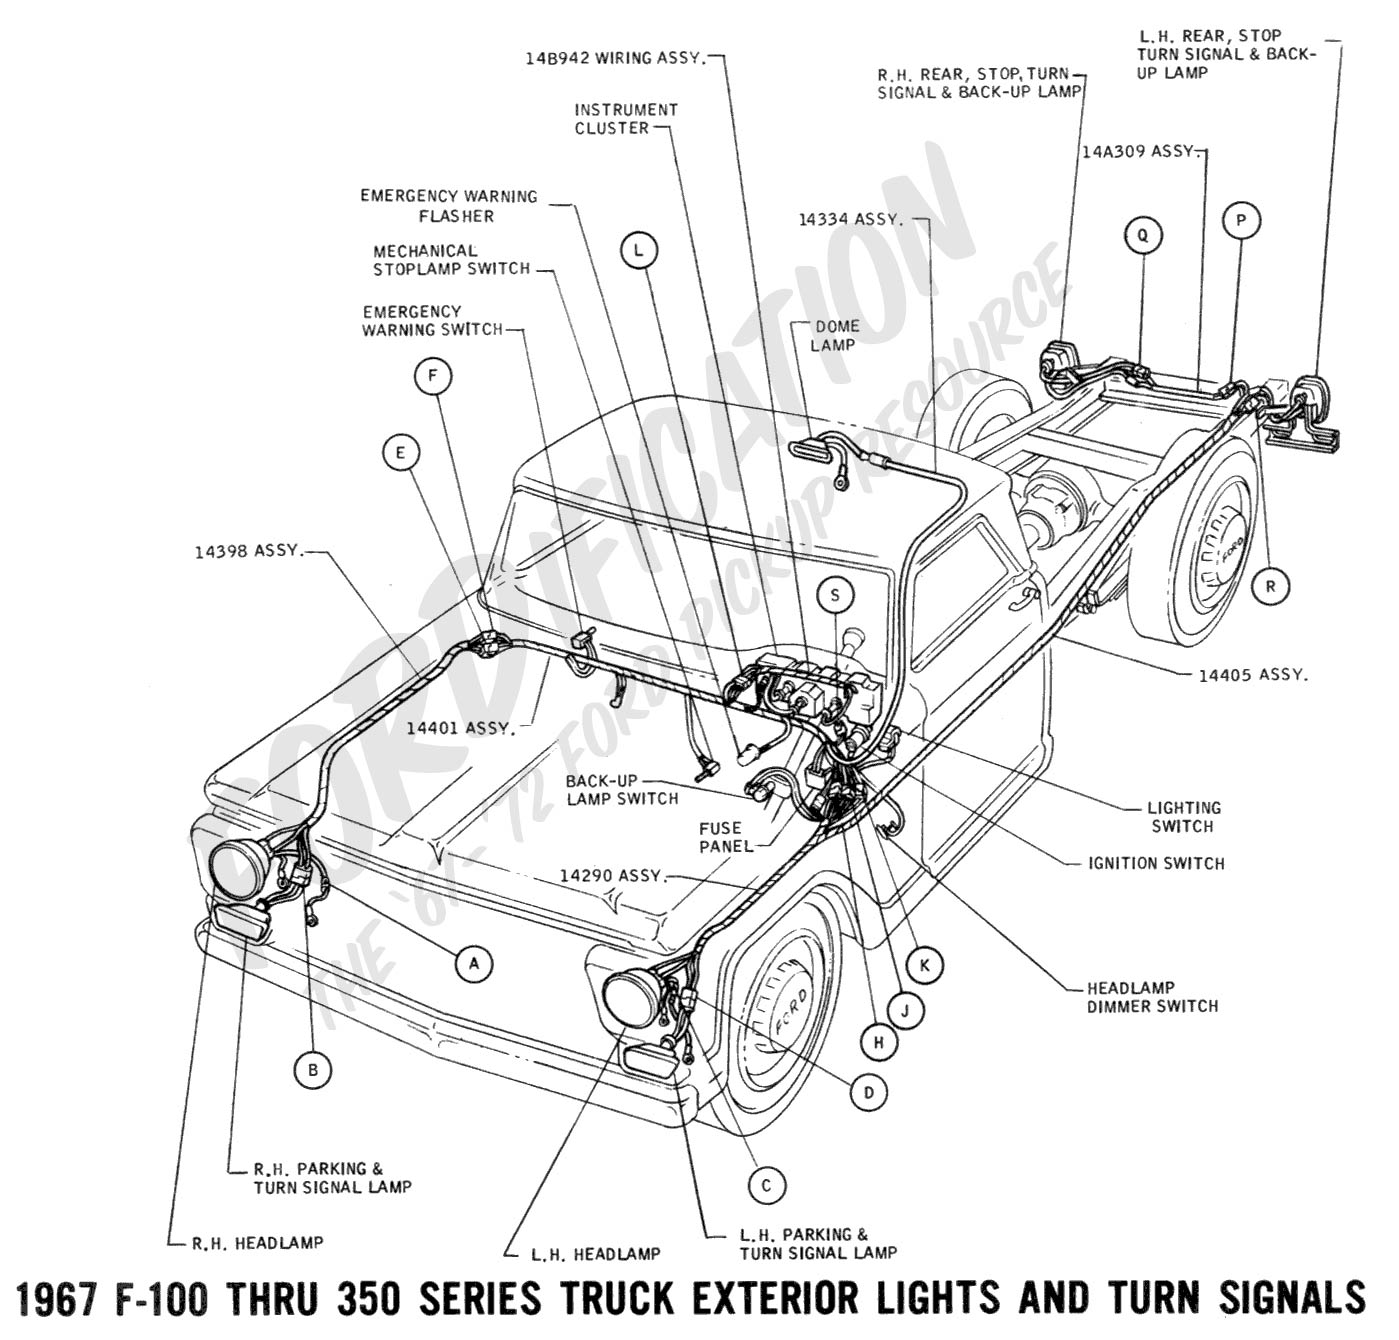 wiring 1967extlights01 ford truck technical drawings and schematics section h wiring 1999 ford f150 turn signal wiring diagram at eliteediting.co